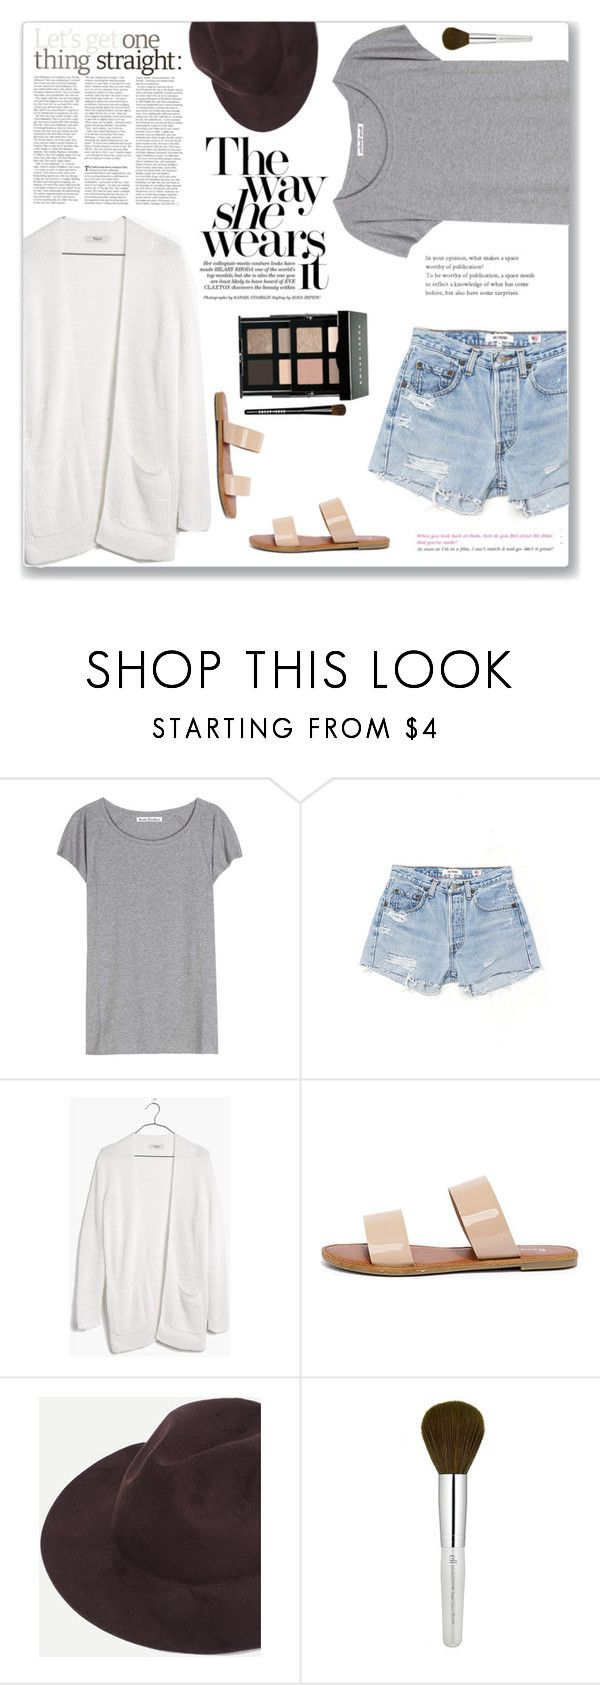 """""""NYX: Sculpting"""" by enjolras1832 ❤ liked on Polyvore featuring Acne Studios, RE/DONE, Madewell, Bonnibel and Bobbi Brown Cosmetics"""